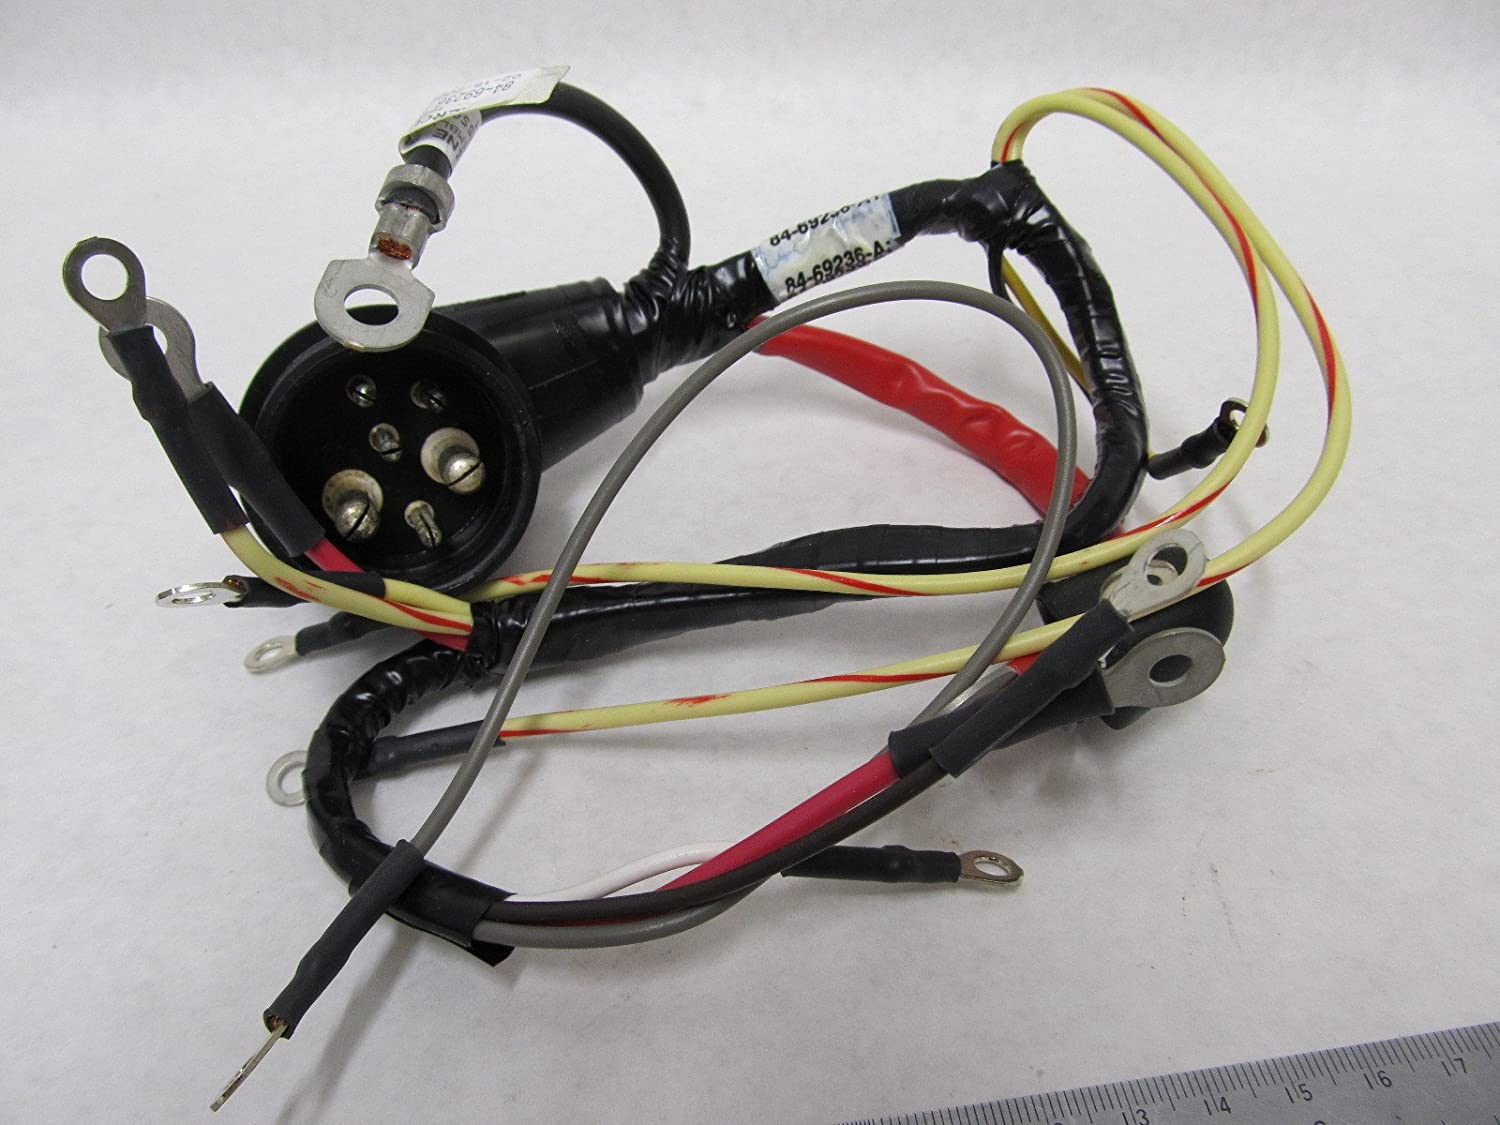 Mercury Wiring Harness Automotive Diagram Omc Johnson Evinrude Ignition Switch Harnesses Outboards And Key